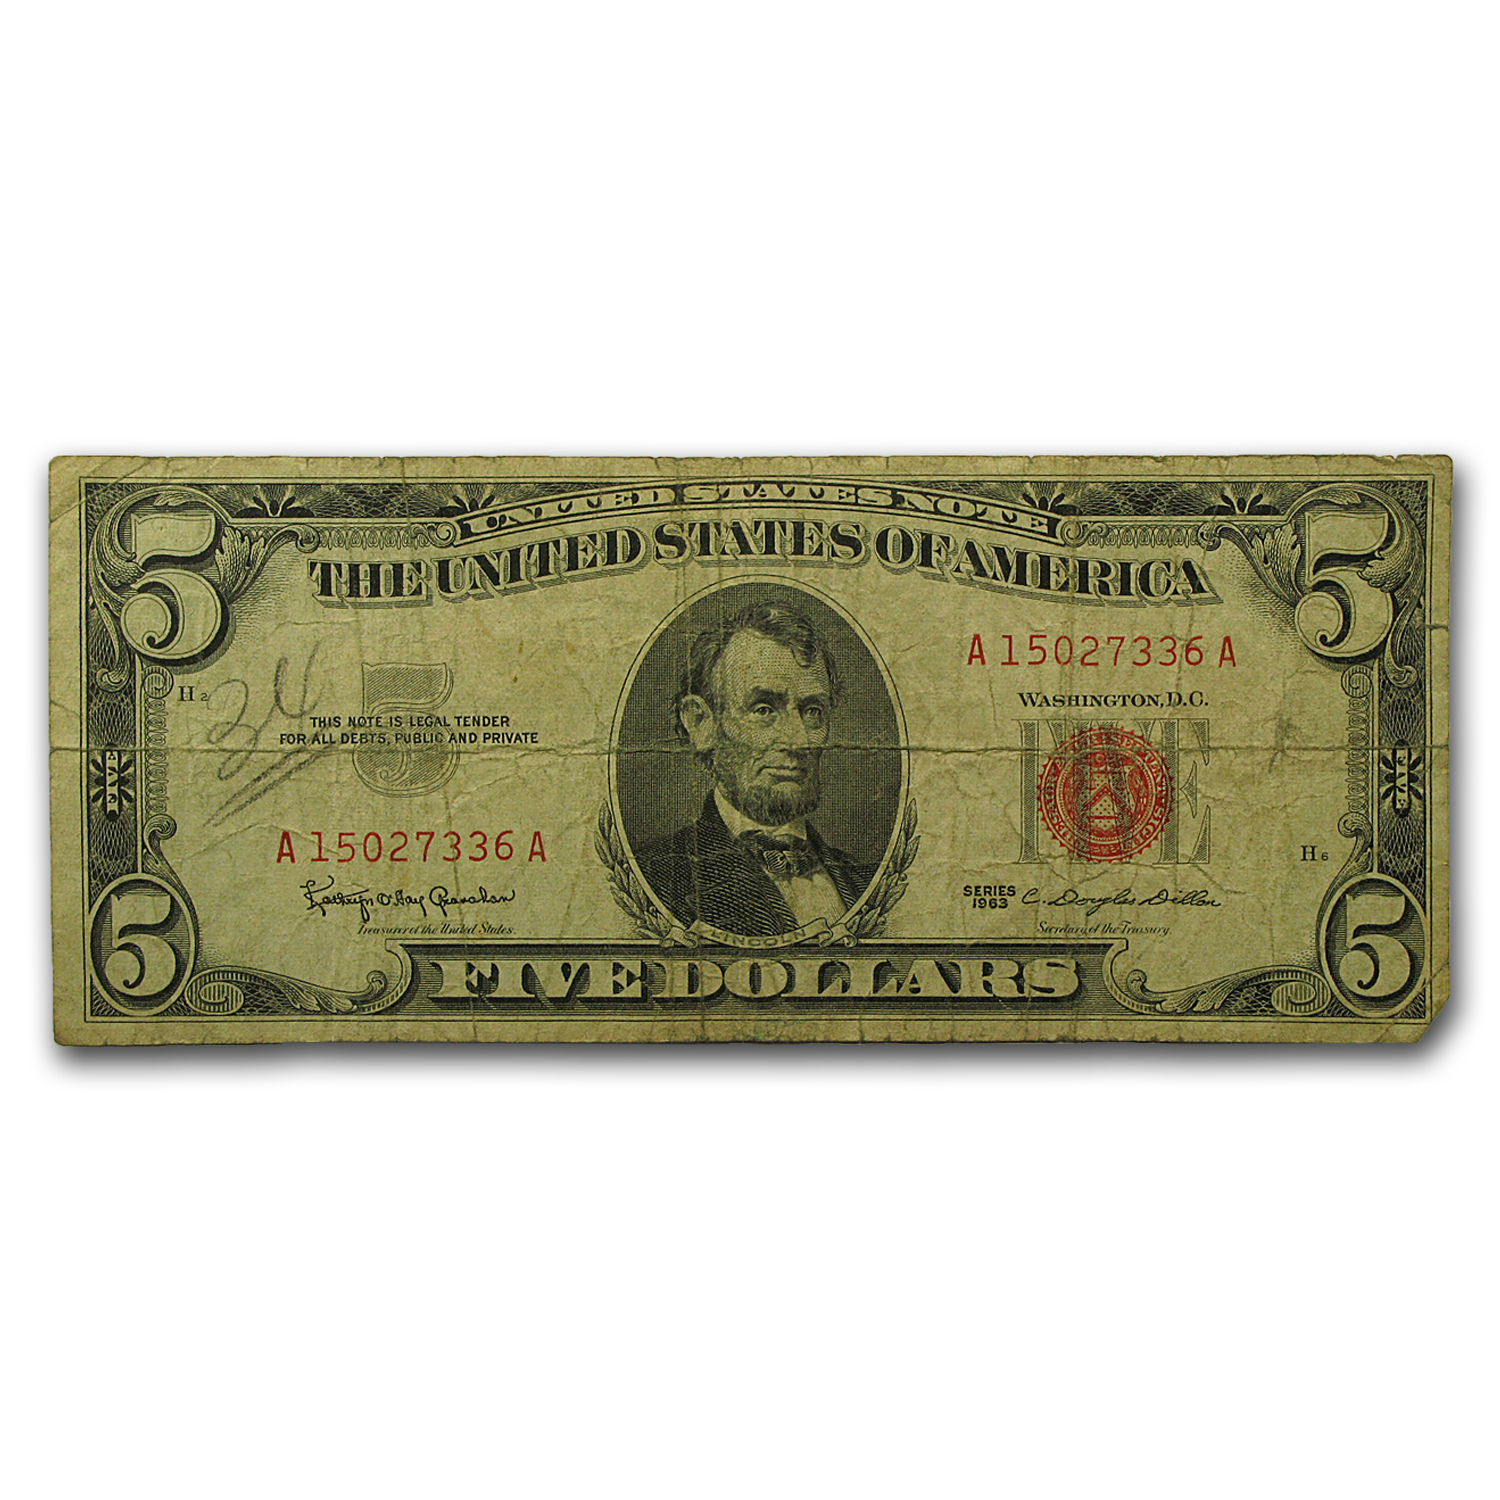 1963 $5.00 U.S. Note Red Seal Cull/Good